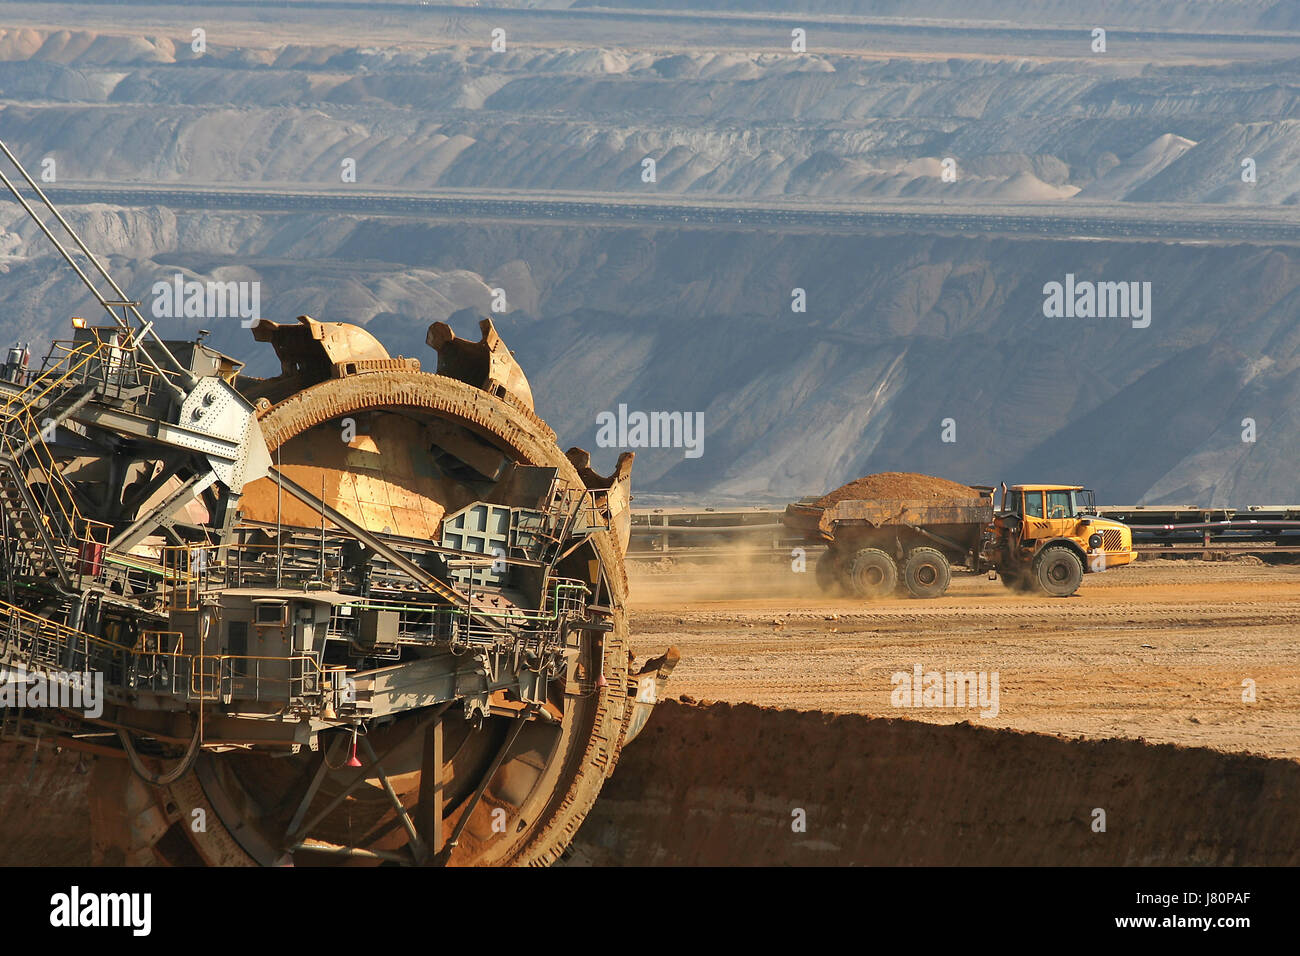 dredger coal surface mining raw material lignite paddle wheel carbon dioxide Stock Photo